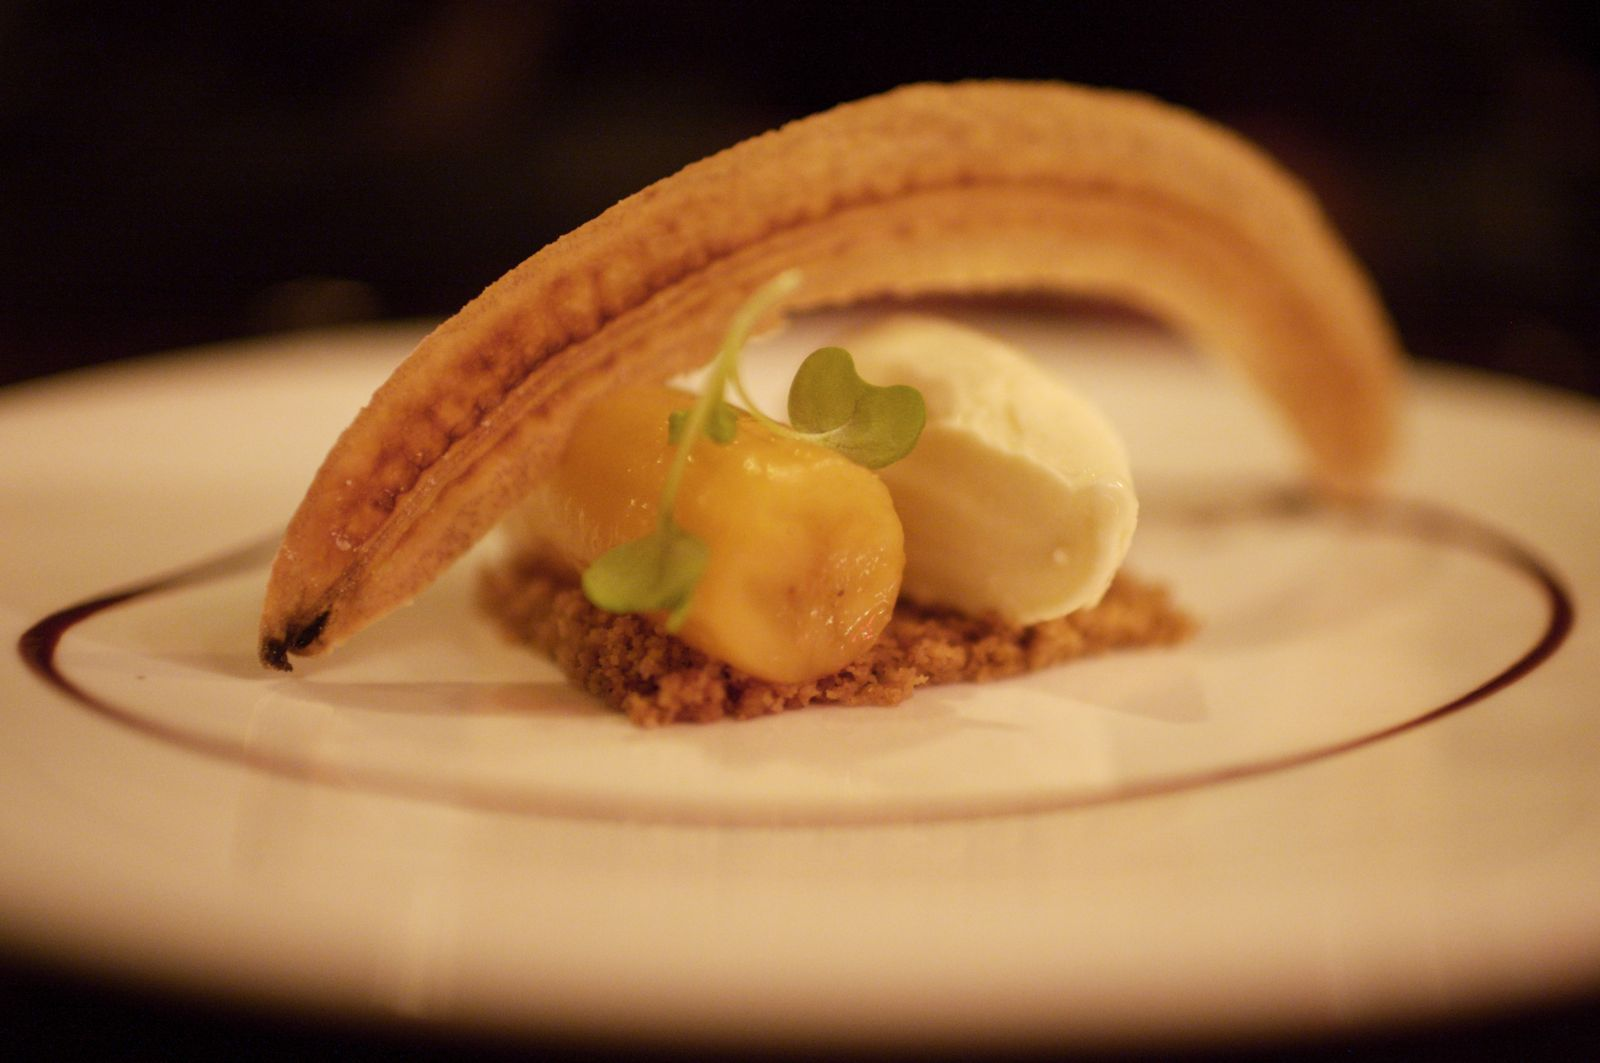 Rum Braised Banana, Mustard Ice Cream, Brown Butter Cake